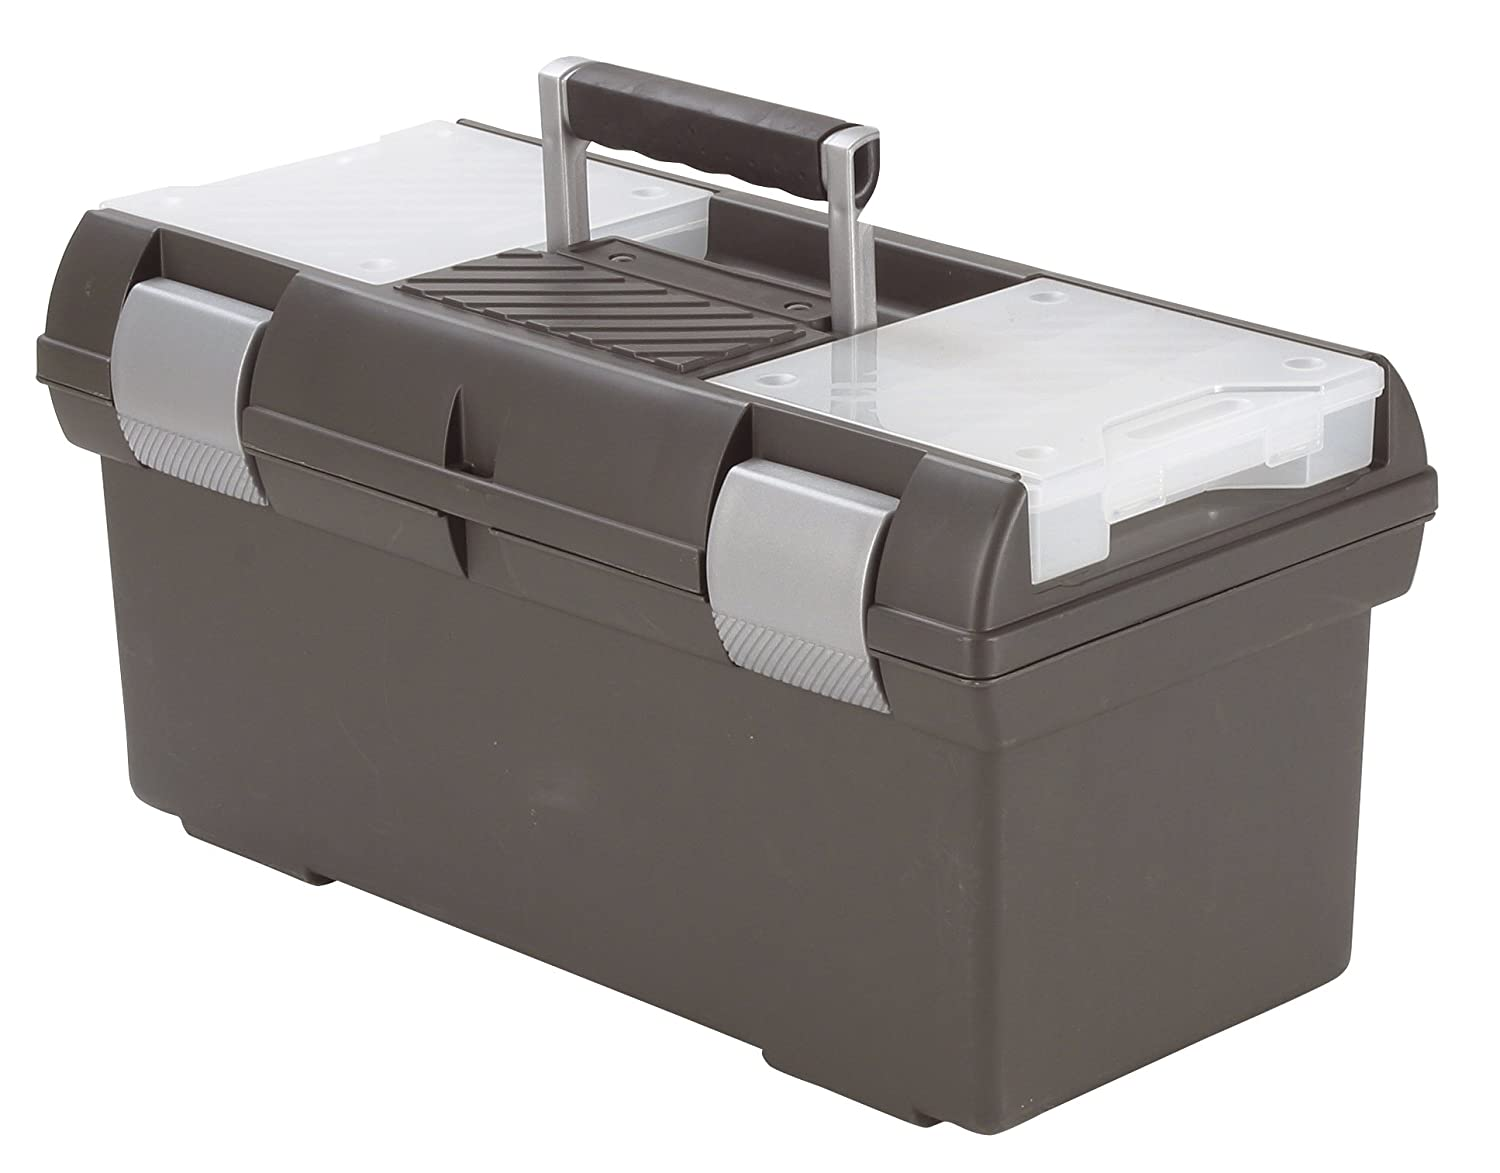 Amazon.com: Curver 157705 Large Toolbox for Removable Accessories by Curver: Home & Kitchen